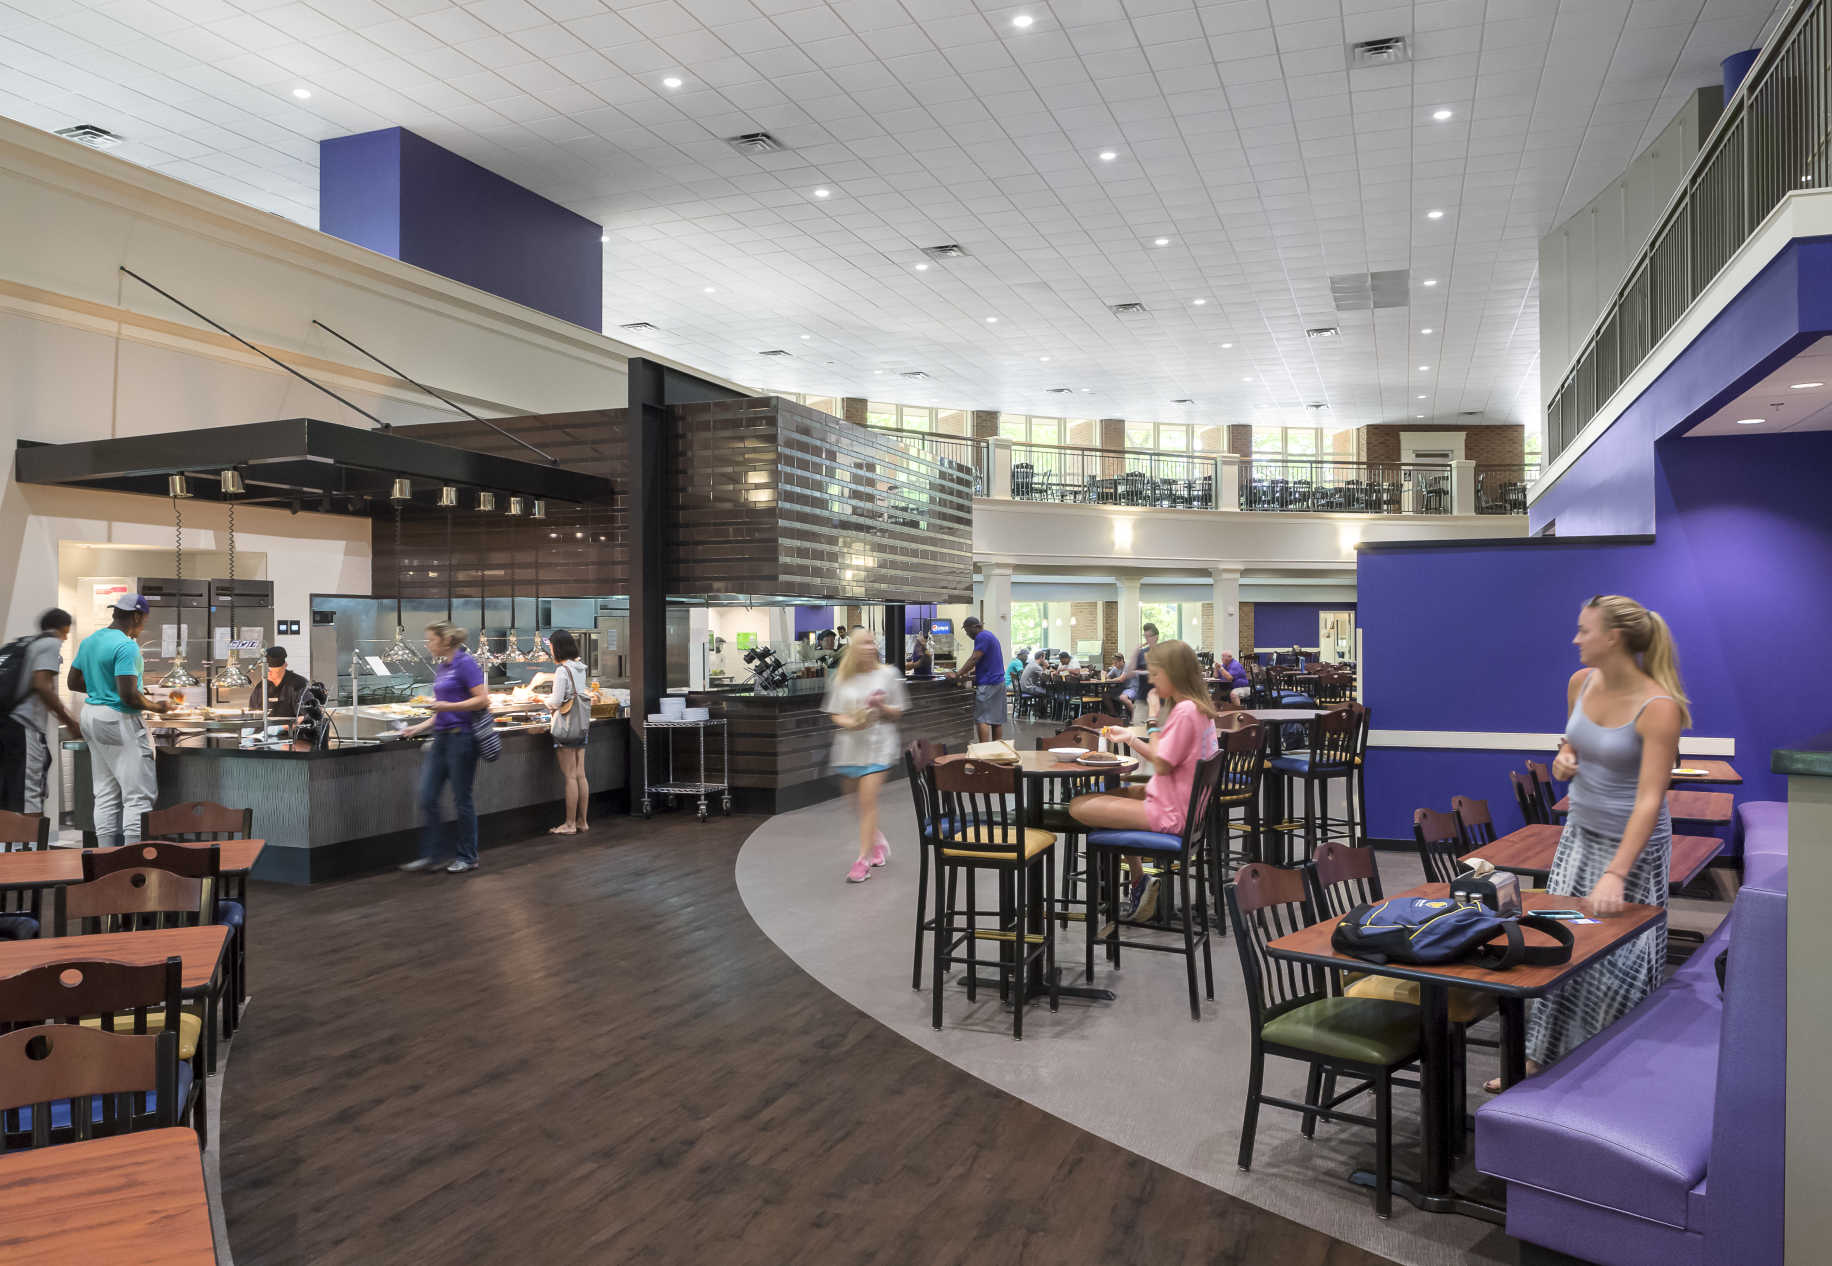 Charles e daniel dining hall dp3 architects for Dining hall pictures home